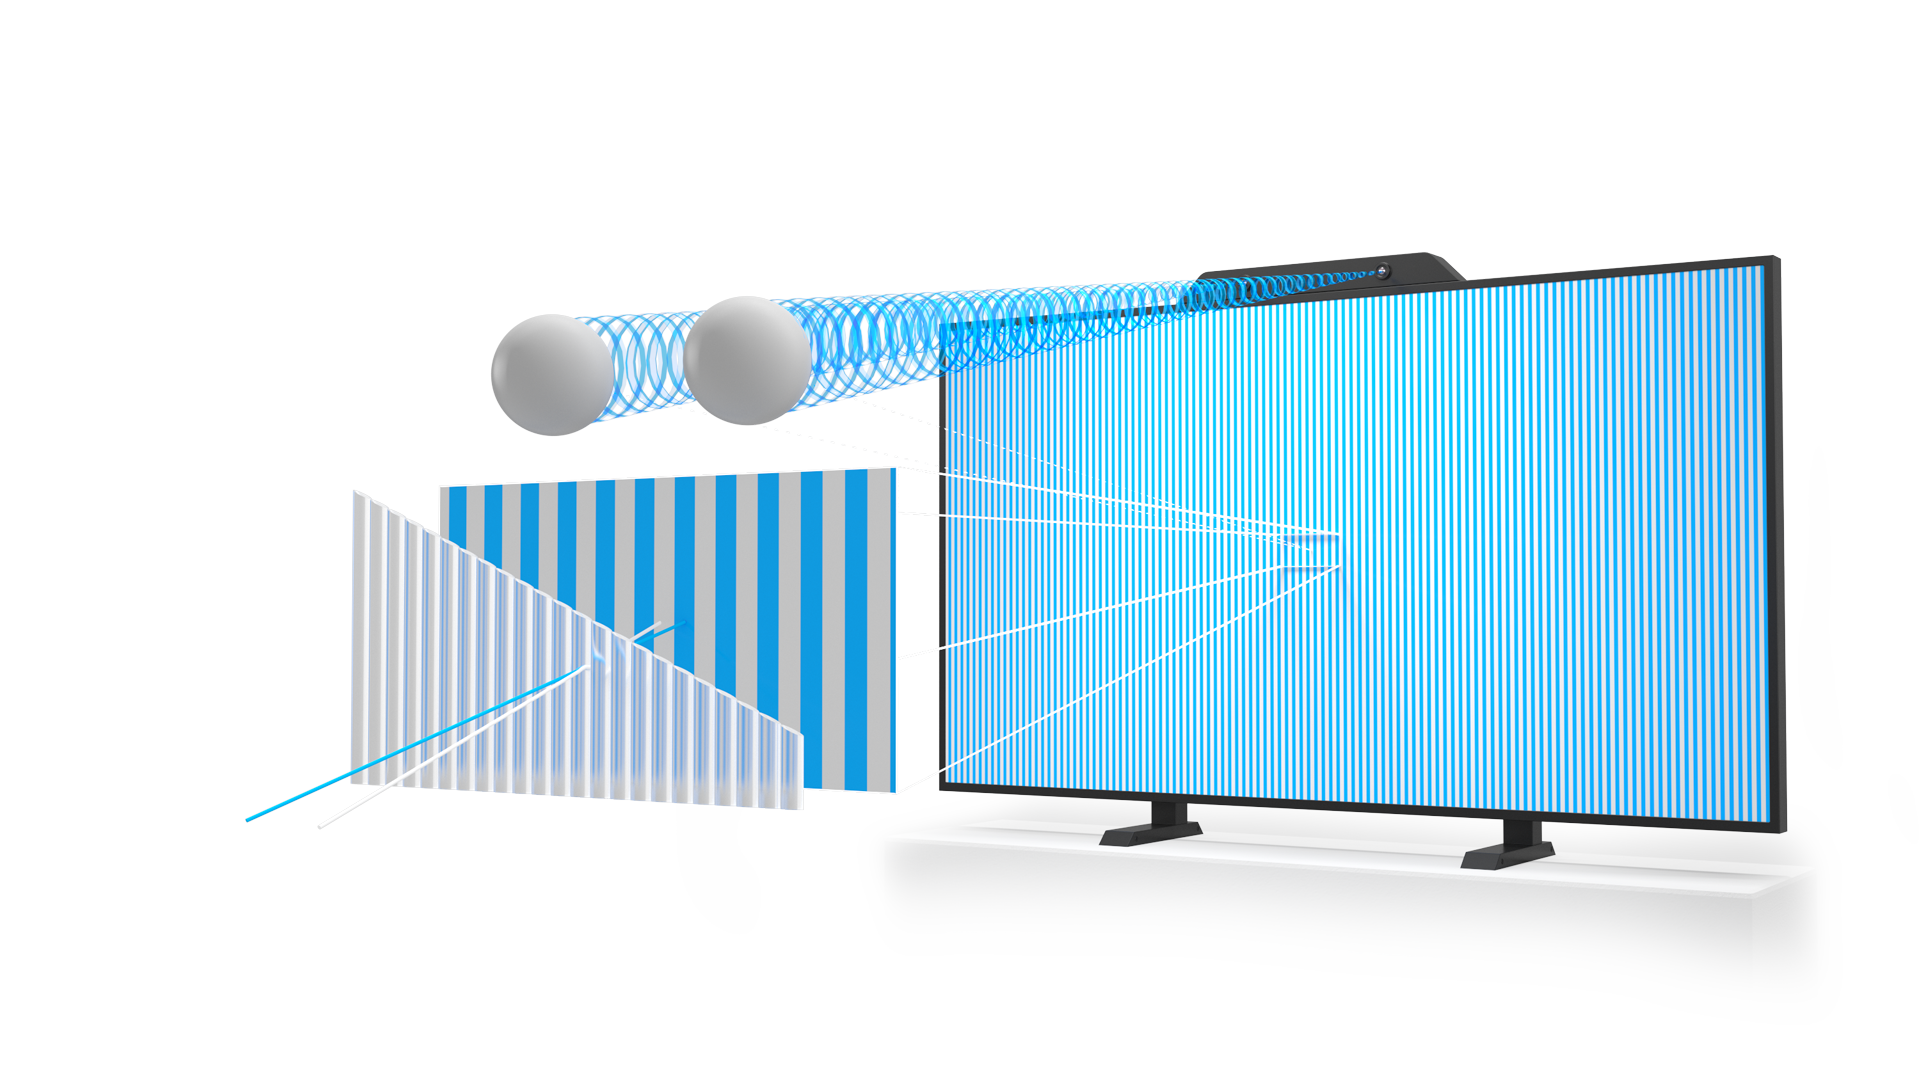 ZVIEW Eye-Tracking Technology